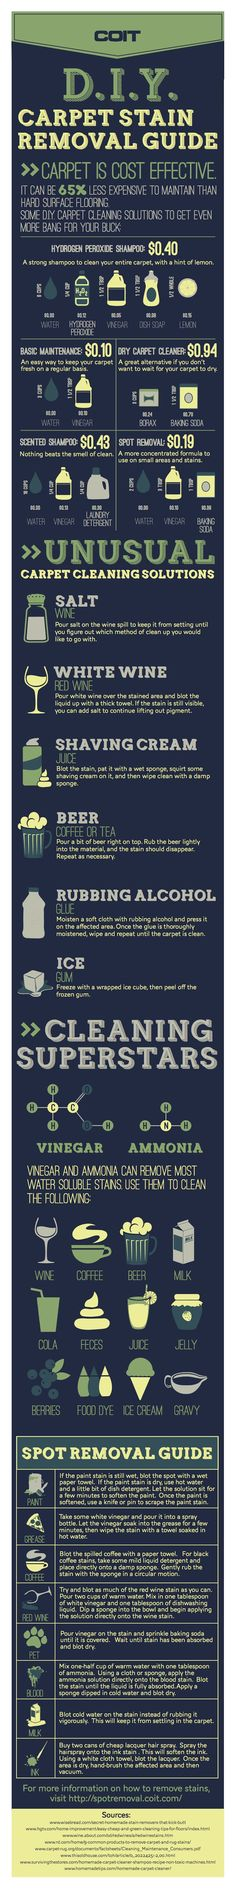 DIY_carpet_stain_removal_guide_Infographic.large.jpg 1,043×8,352 pixels